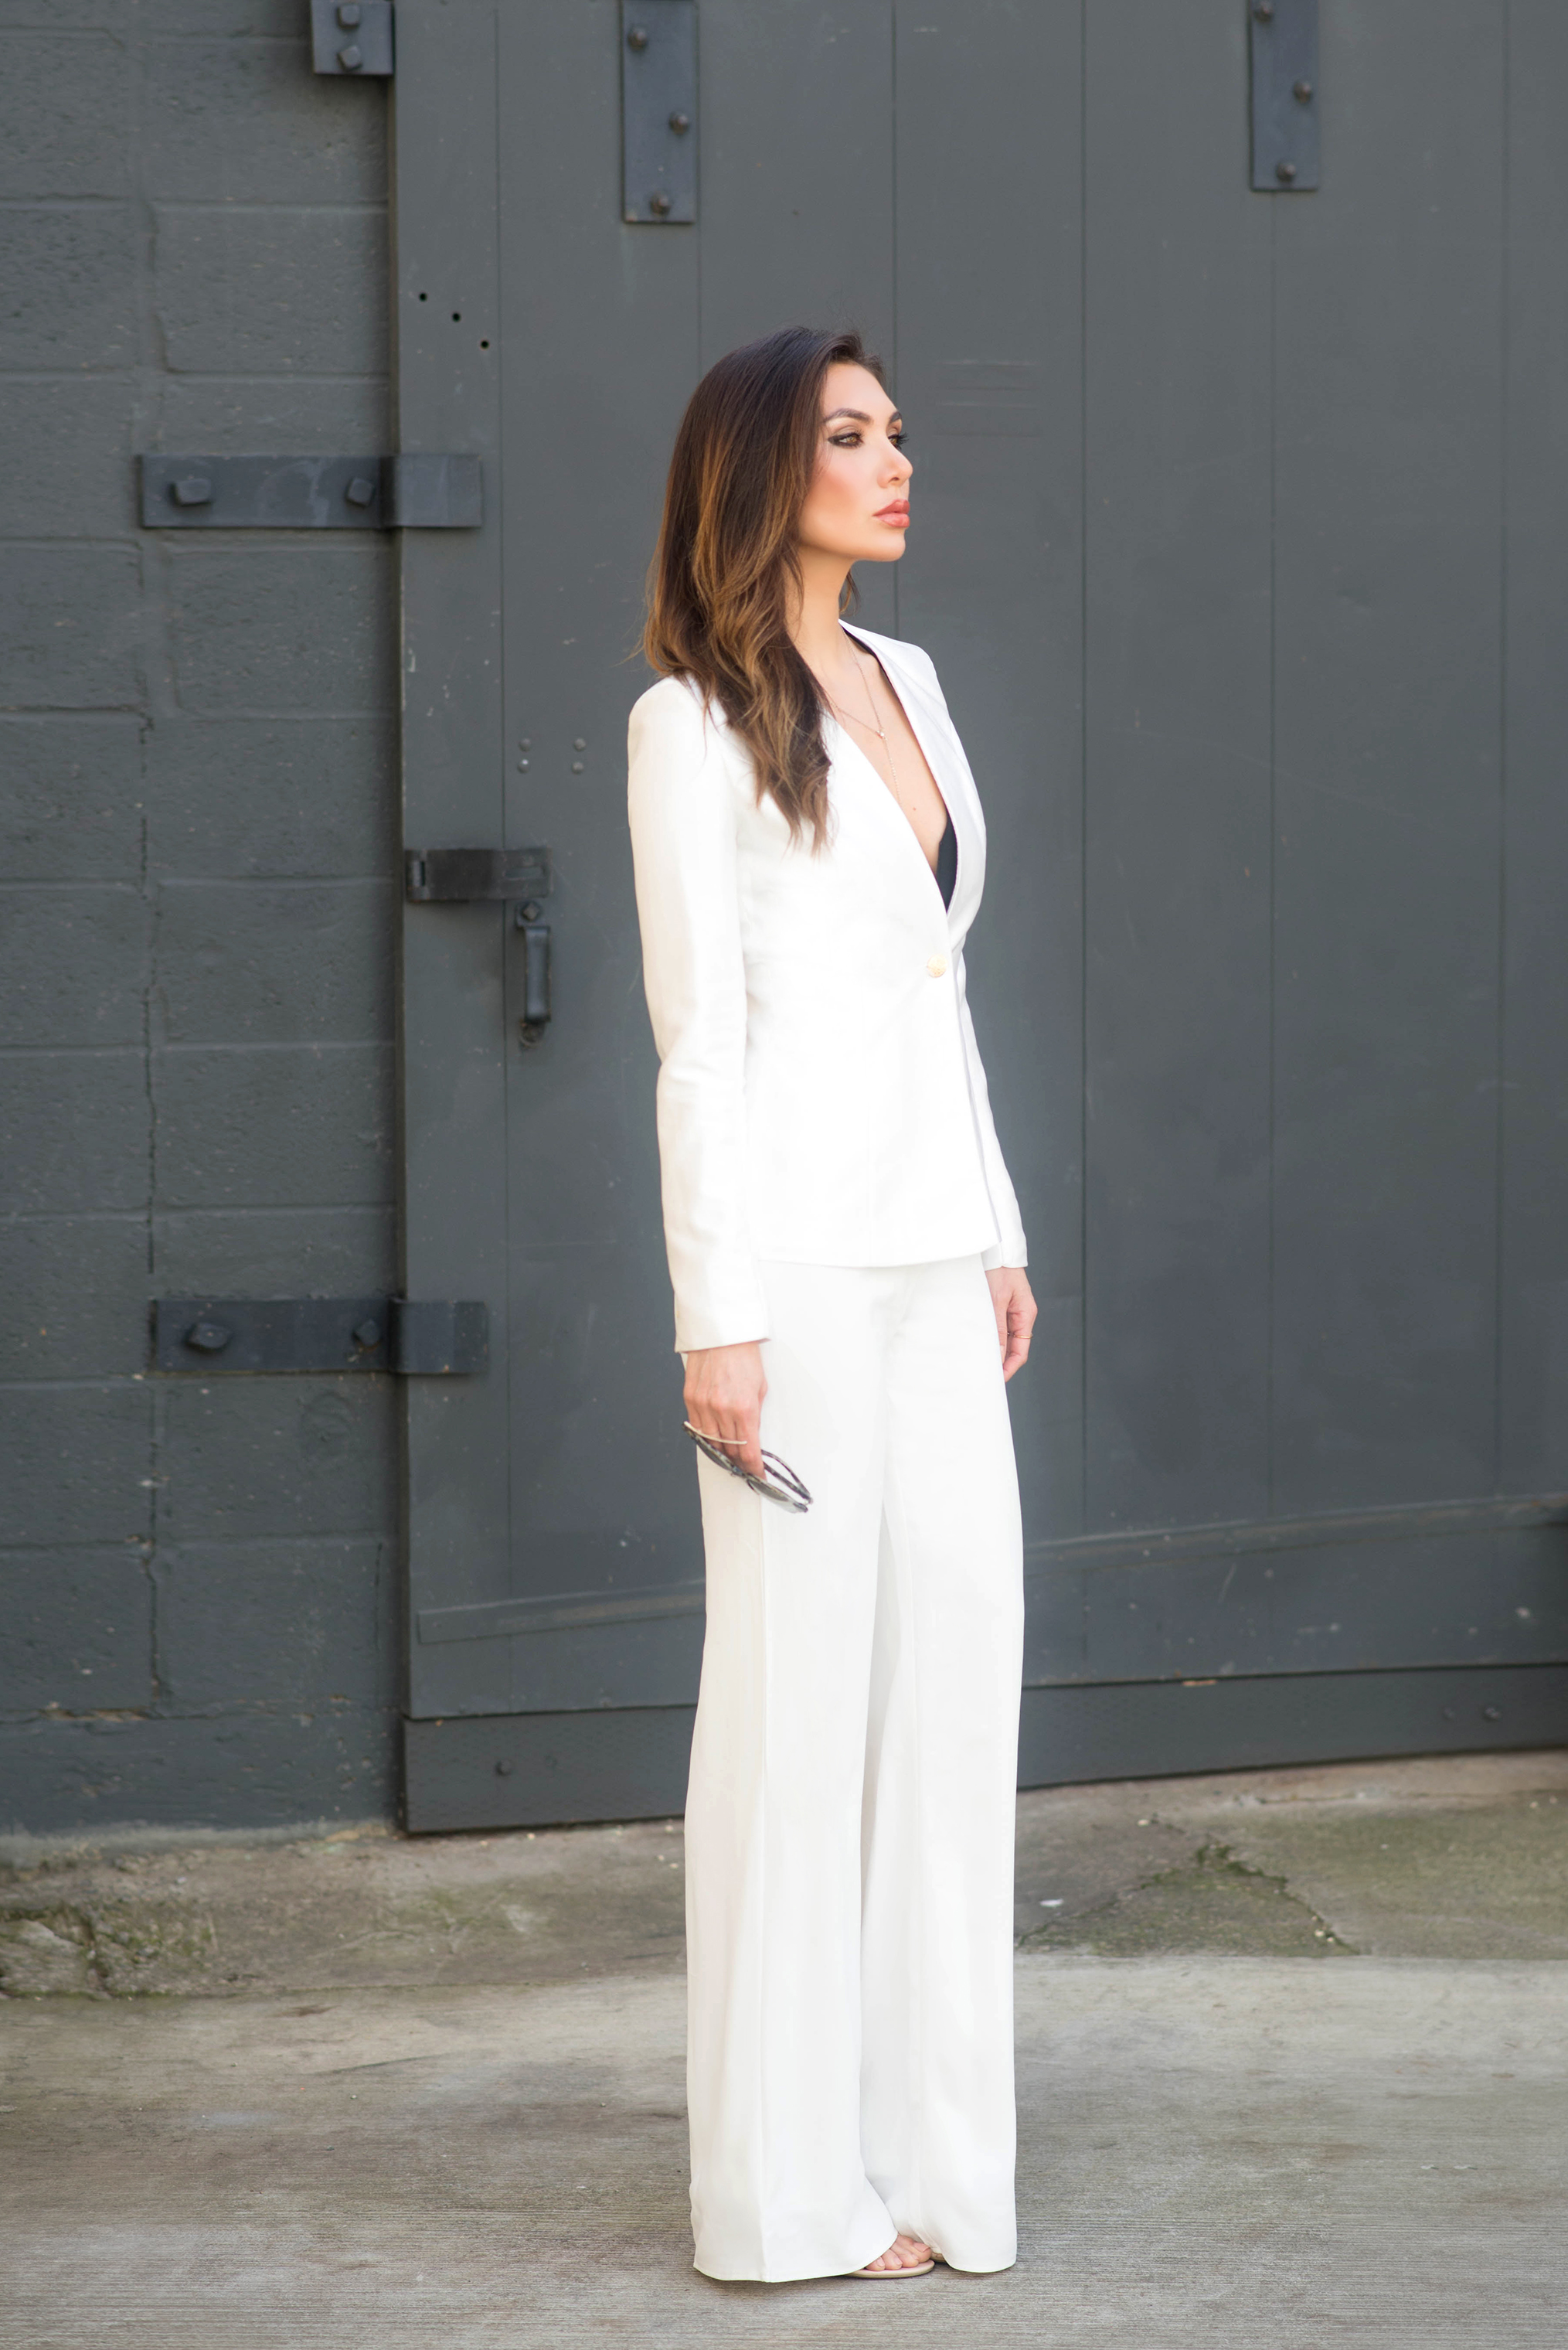 All white pantsuit